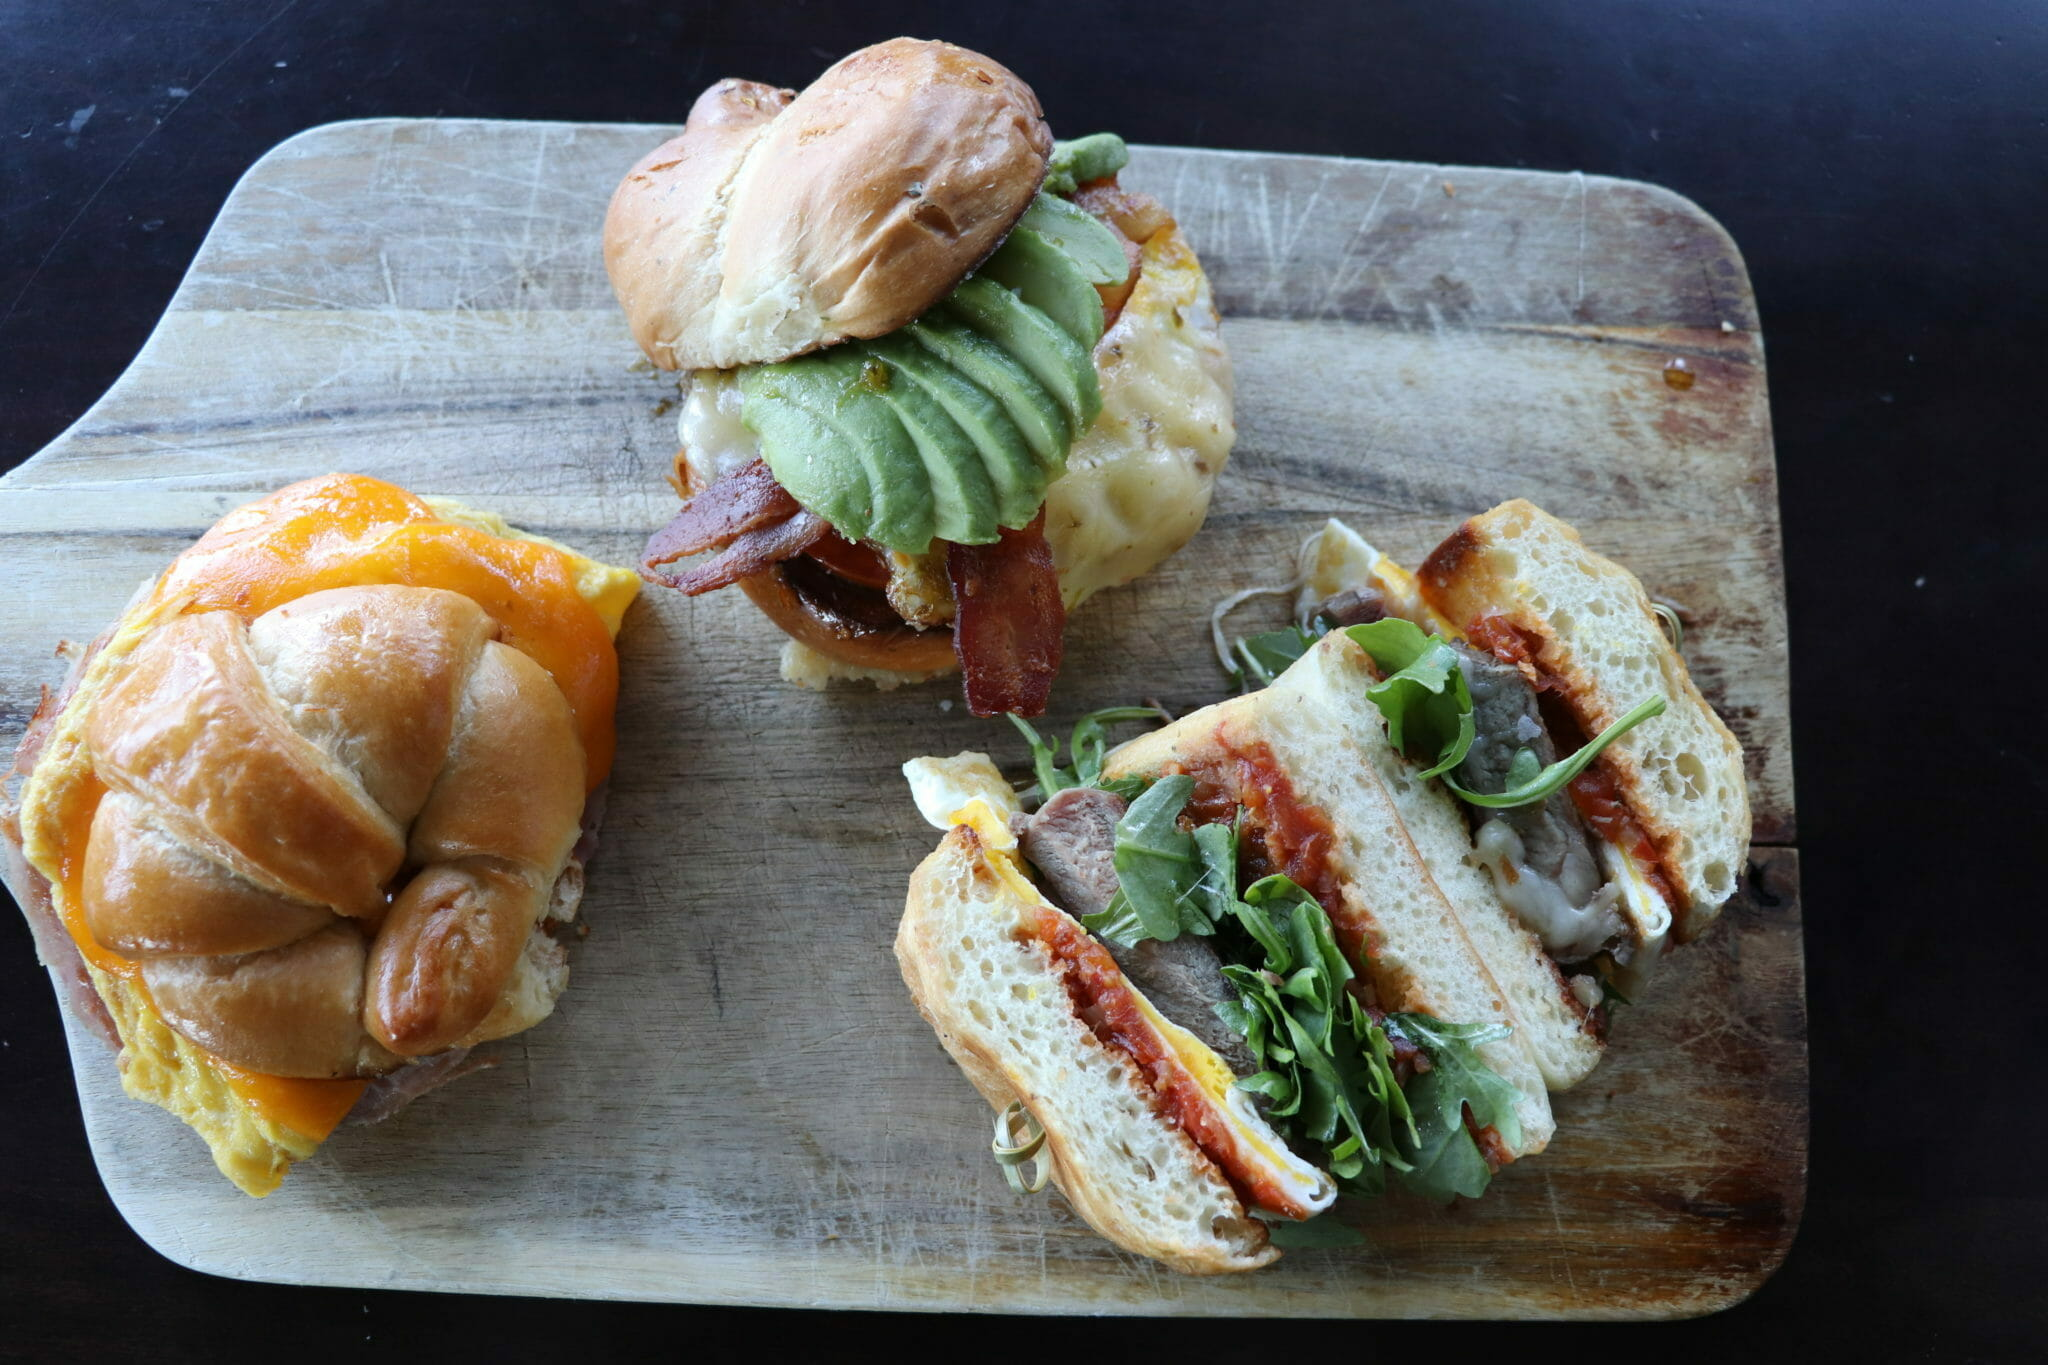 Three breakfast sandwiches on cutting board